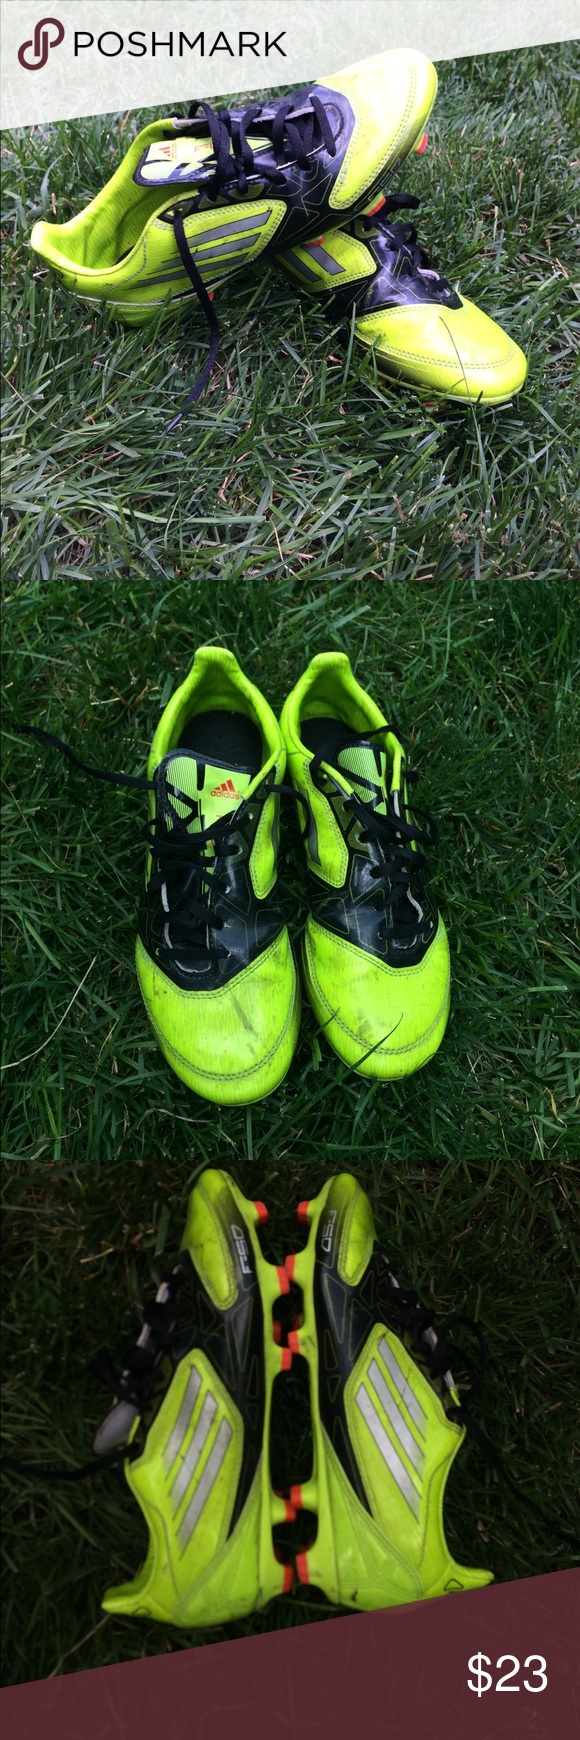 Adidas F-50 Soccer Cleats Used. In great condition just a little dirty. Very comfortable. adidas Shoes Athletic Shoes